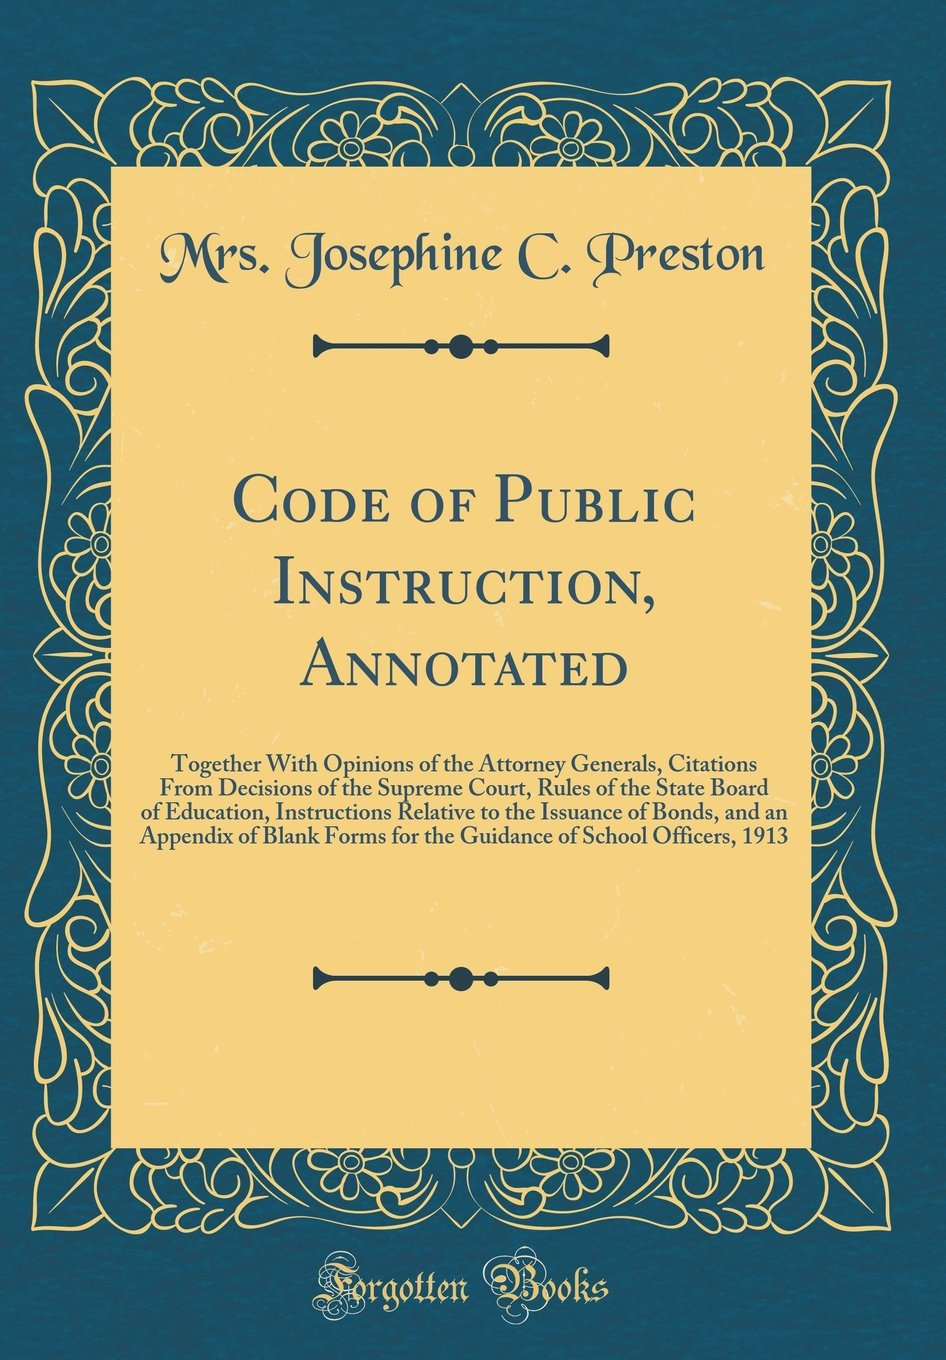 Read Online Code of Public Instruction, Annotated: Together With Opinions of the Attorney Generals, Citations From Decisions of the Supreme Court, Rules of the ... of Bonds, and an Appendix of Blank Forms fo PDF